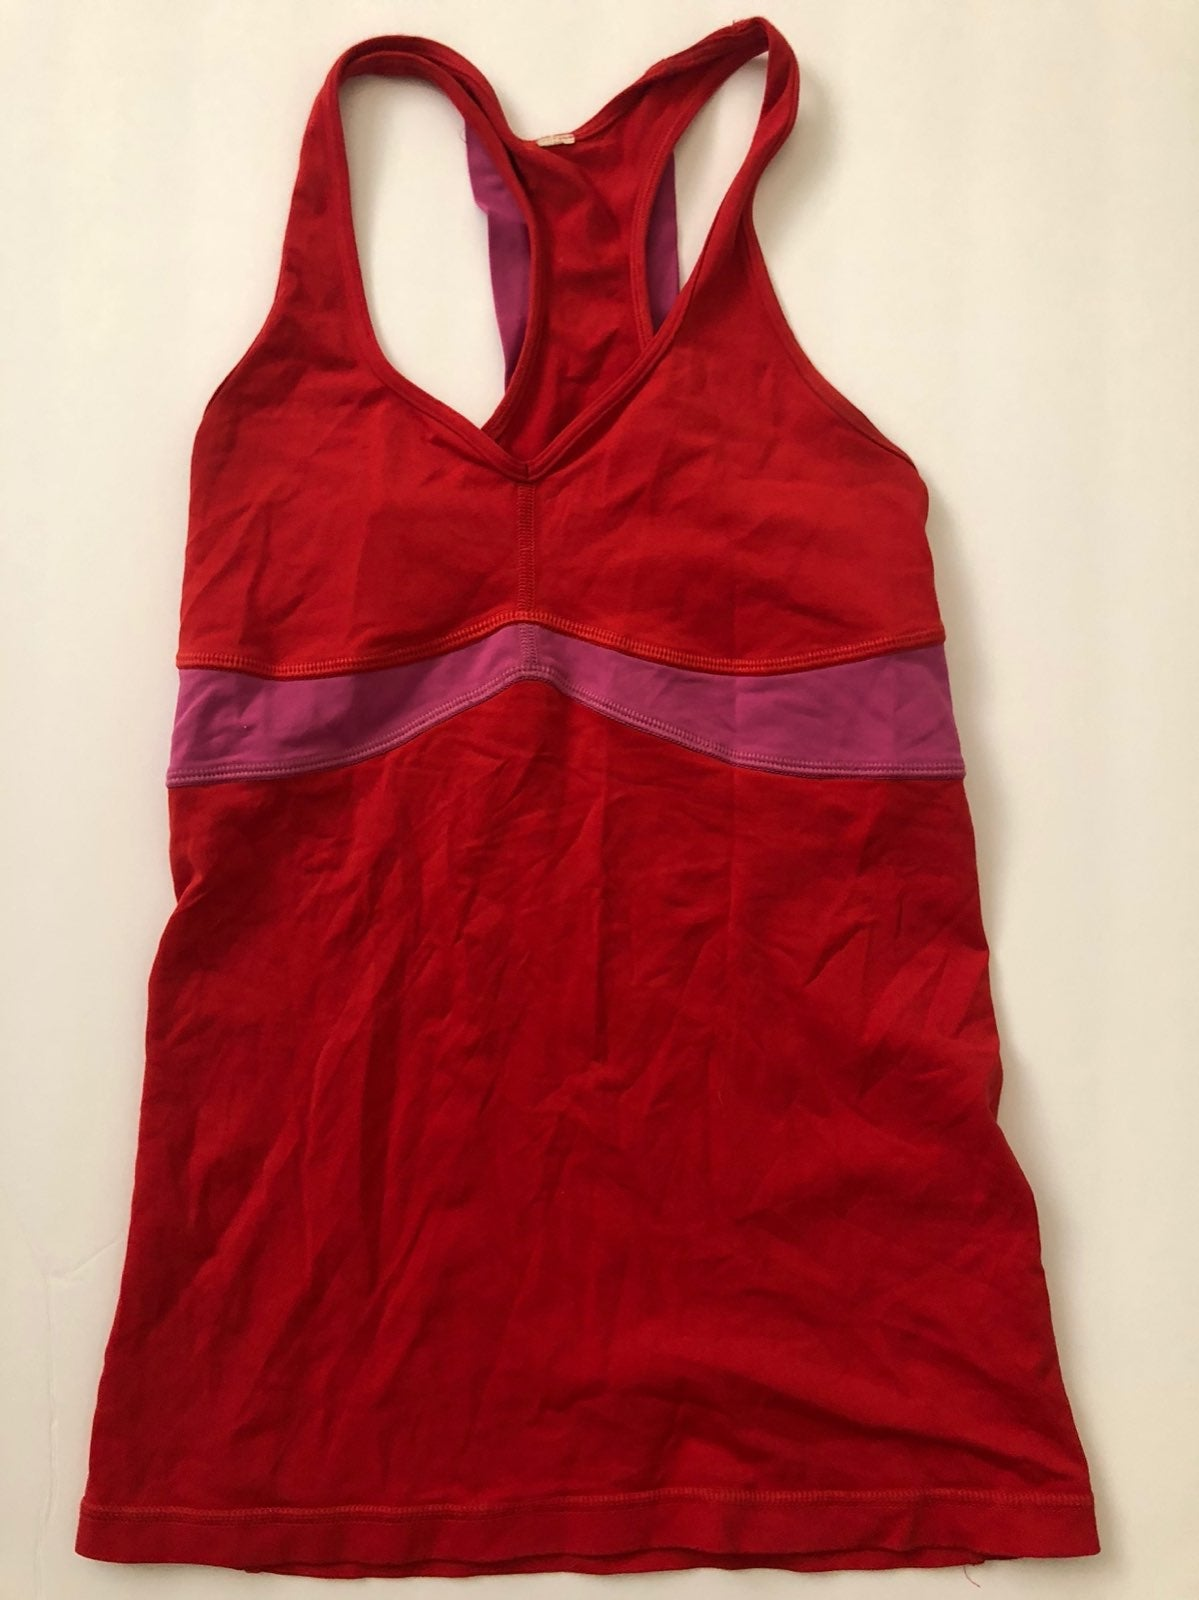 Lululemon curve tank. Red with pink